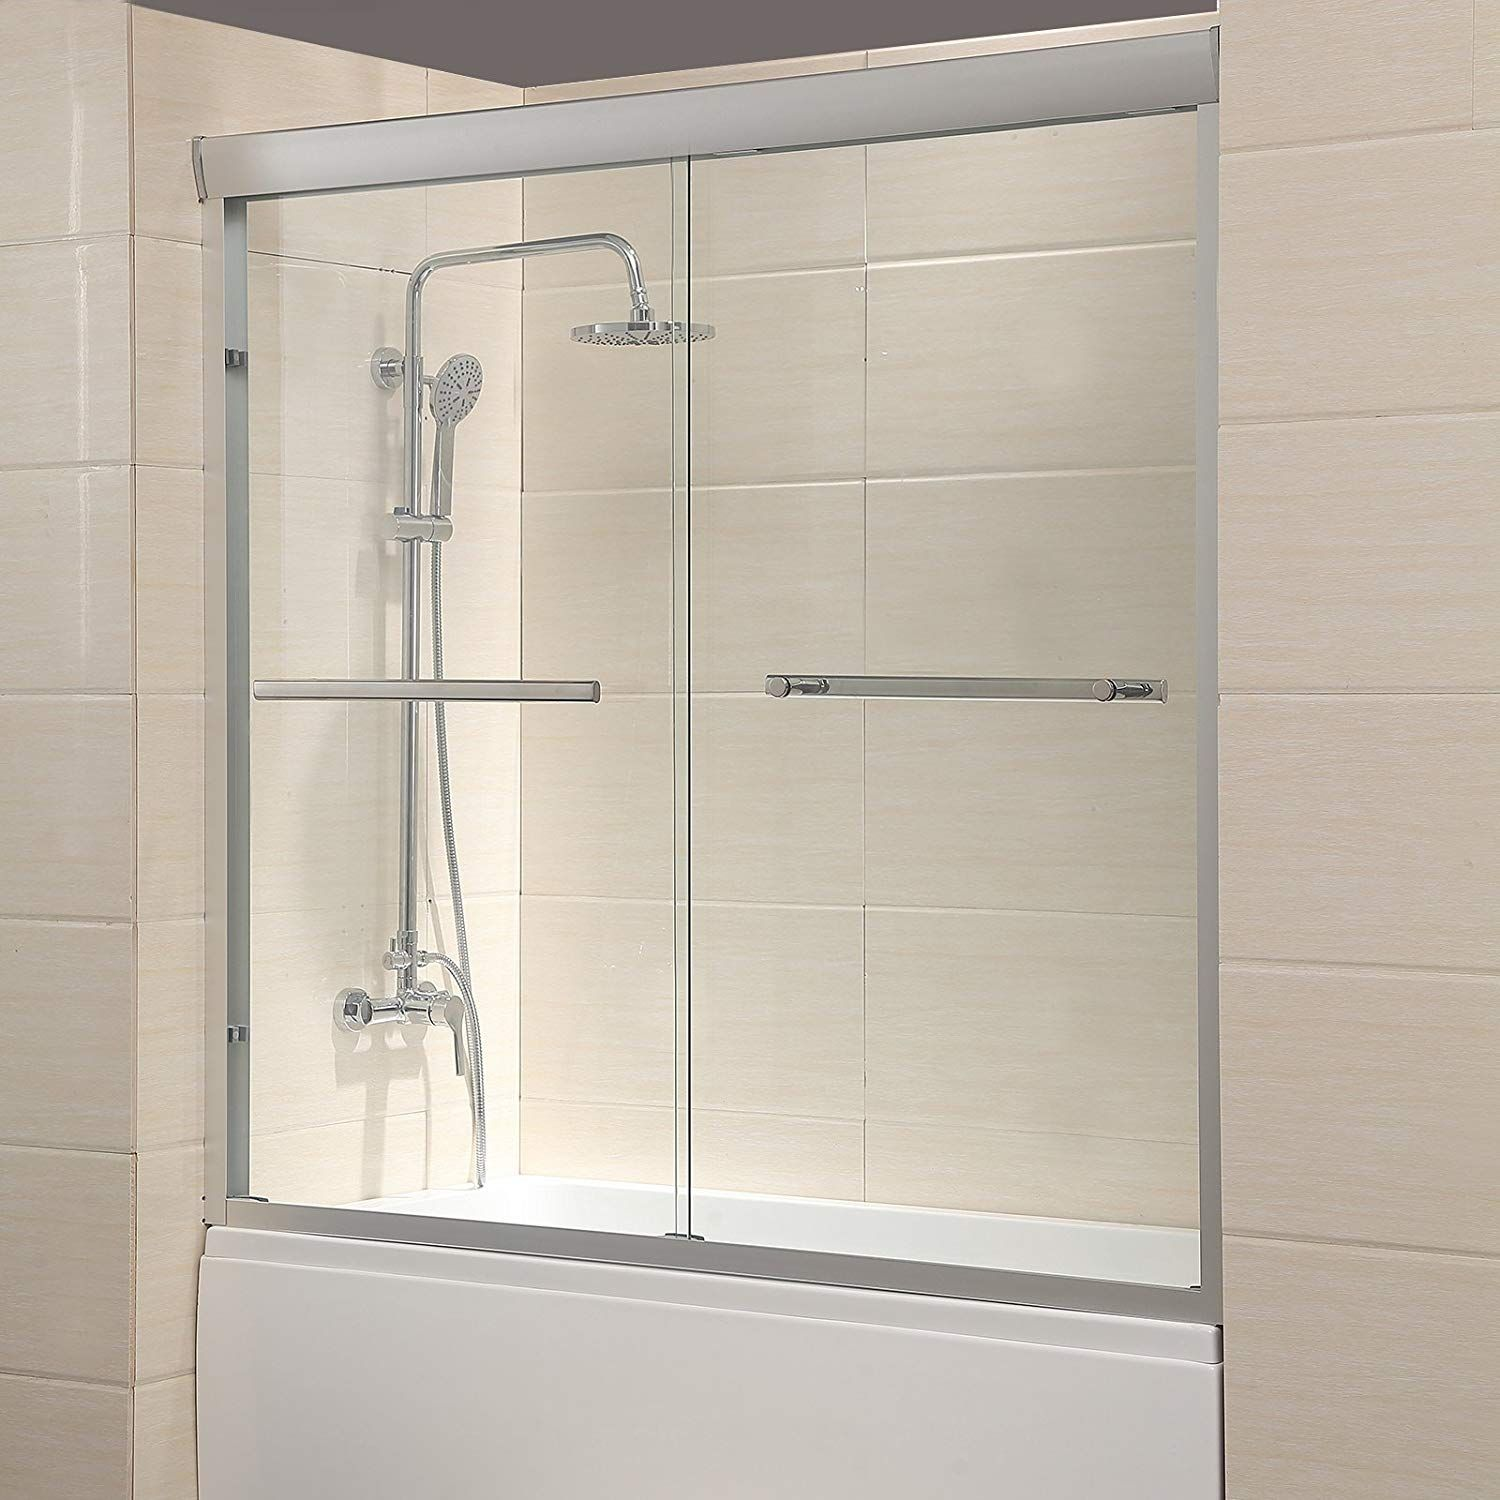 Mecor 60 W X 57 4 H Framed Bathtub Sliding Shower Door 1 4 Clear Glass With 2 Towel Bars Finish Sliding Shower Door Shower Doors Bathroom Shower Doors